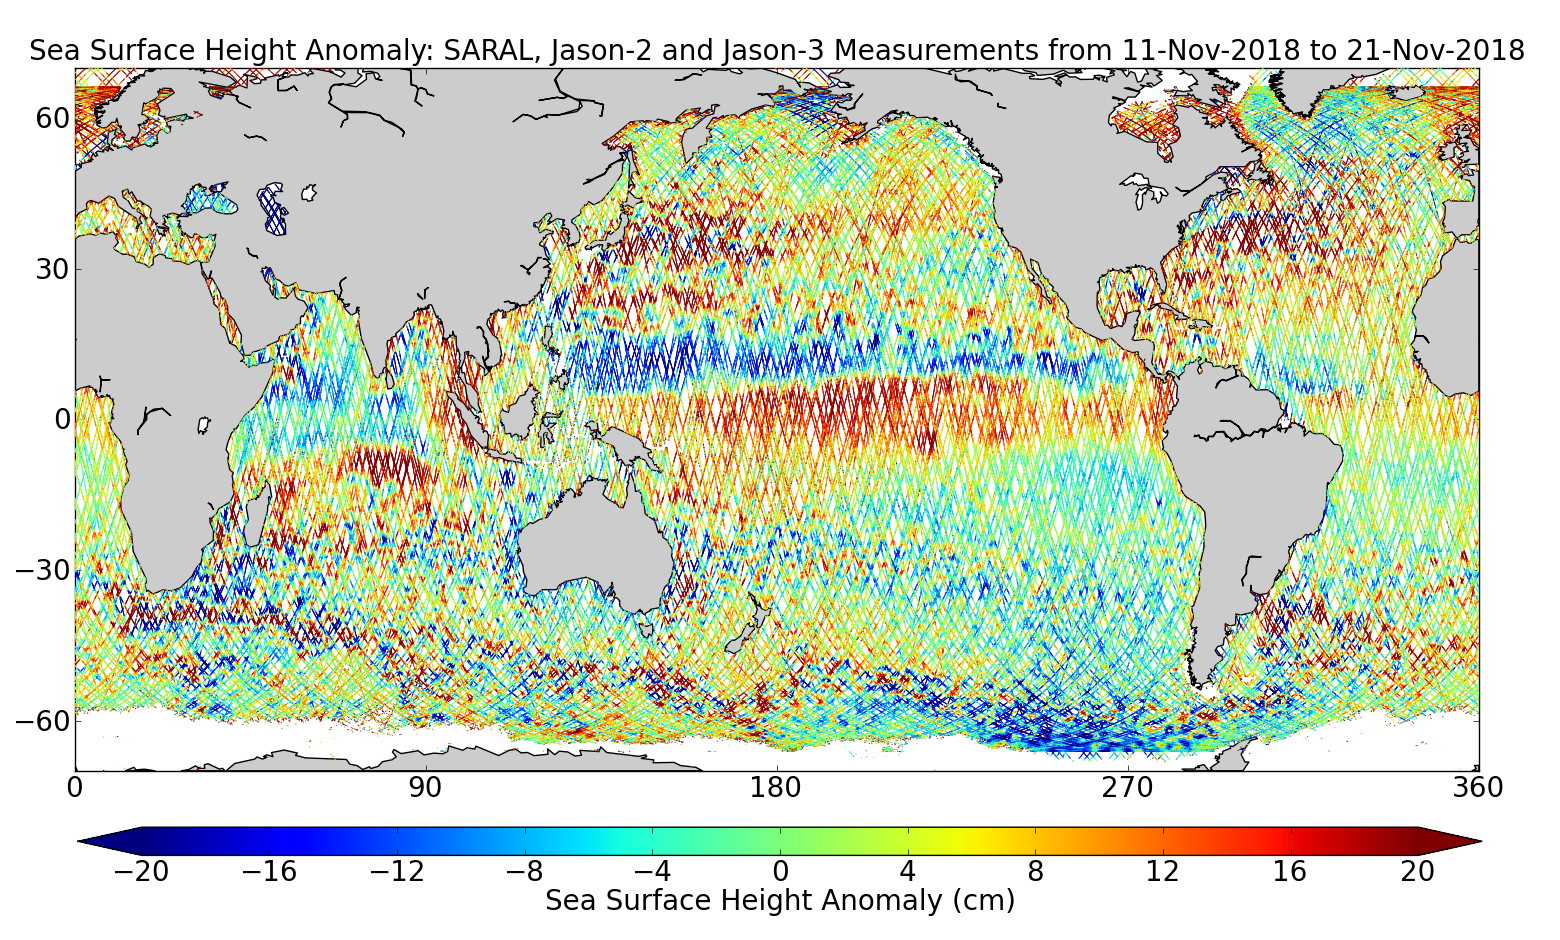 Sea Surface Height Anomaly: SARAL, Jason-2 and Jason-3 Measurements from 11-Nov-2018 to 21-Nov-2018